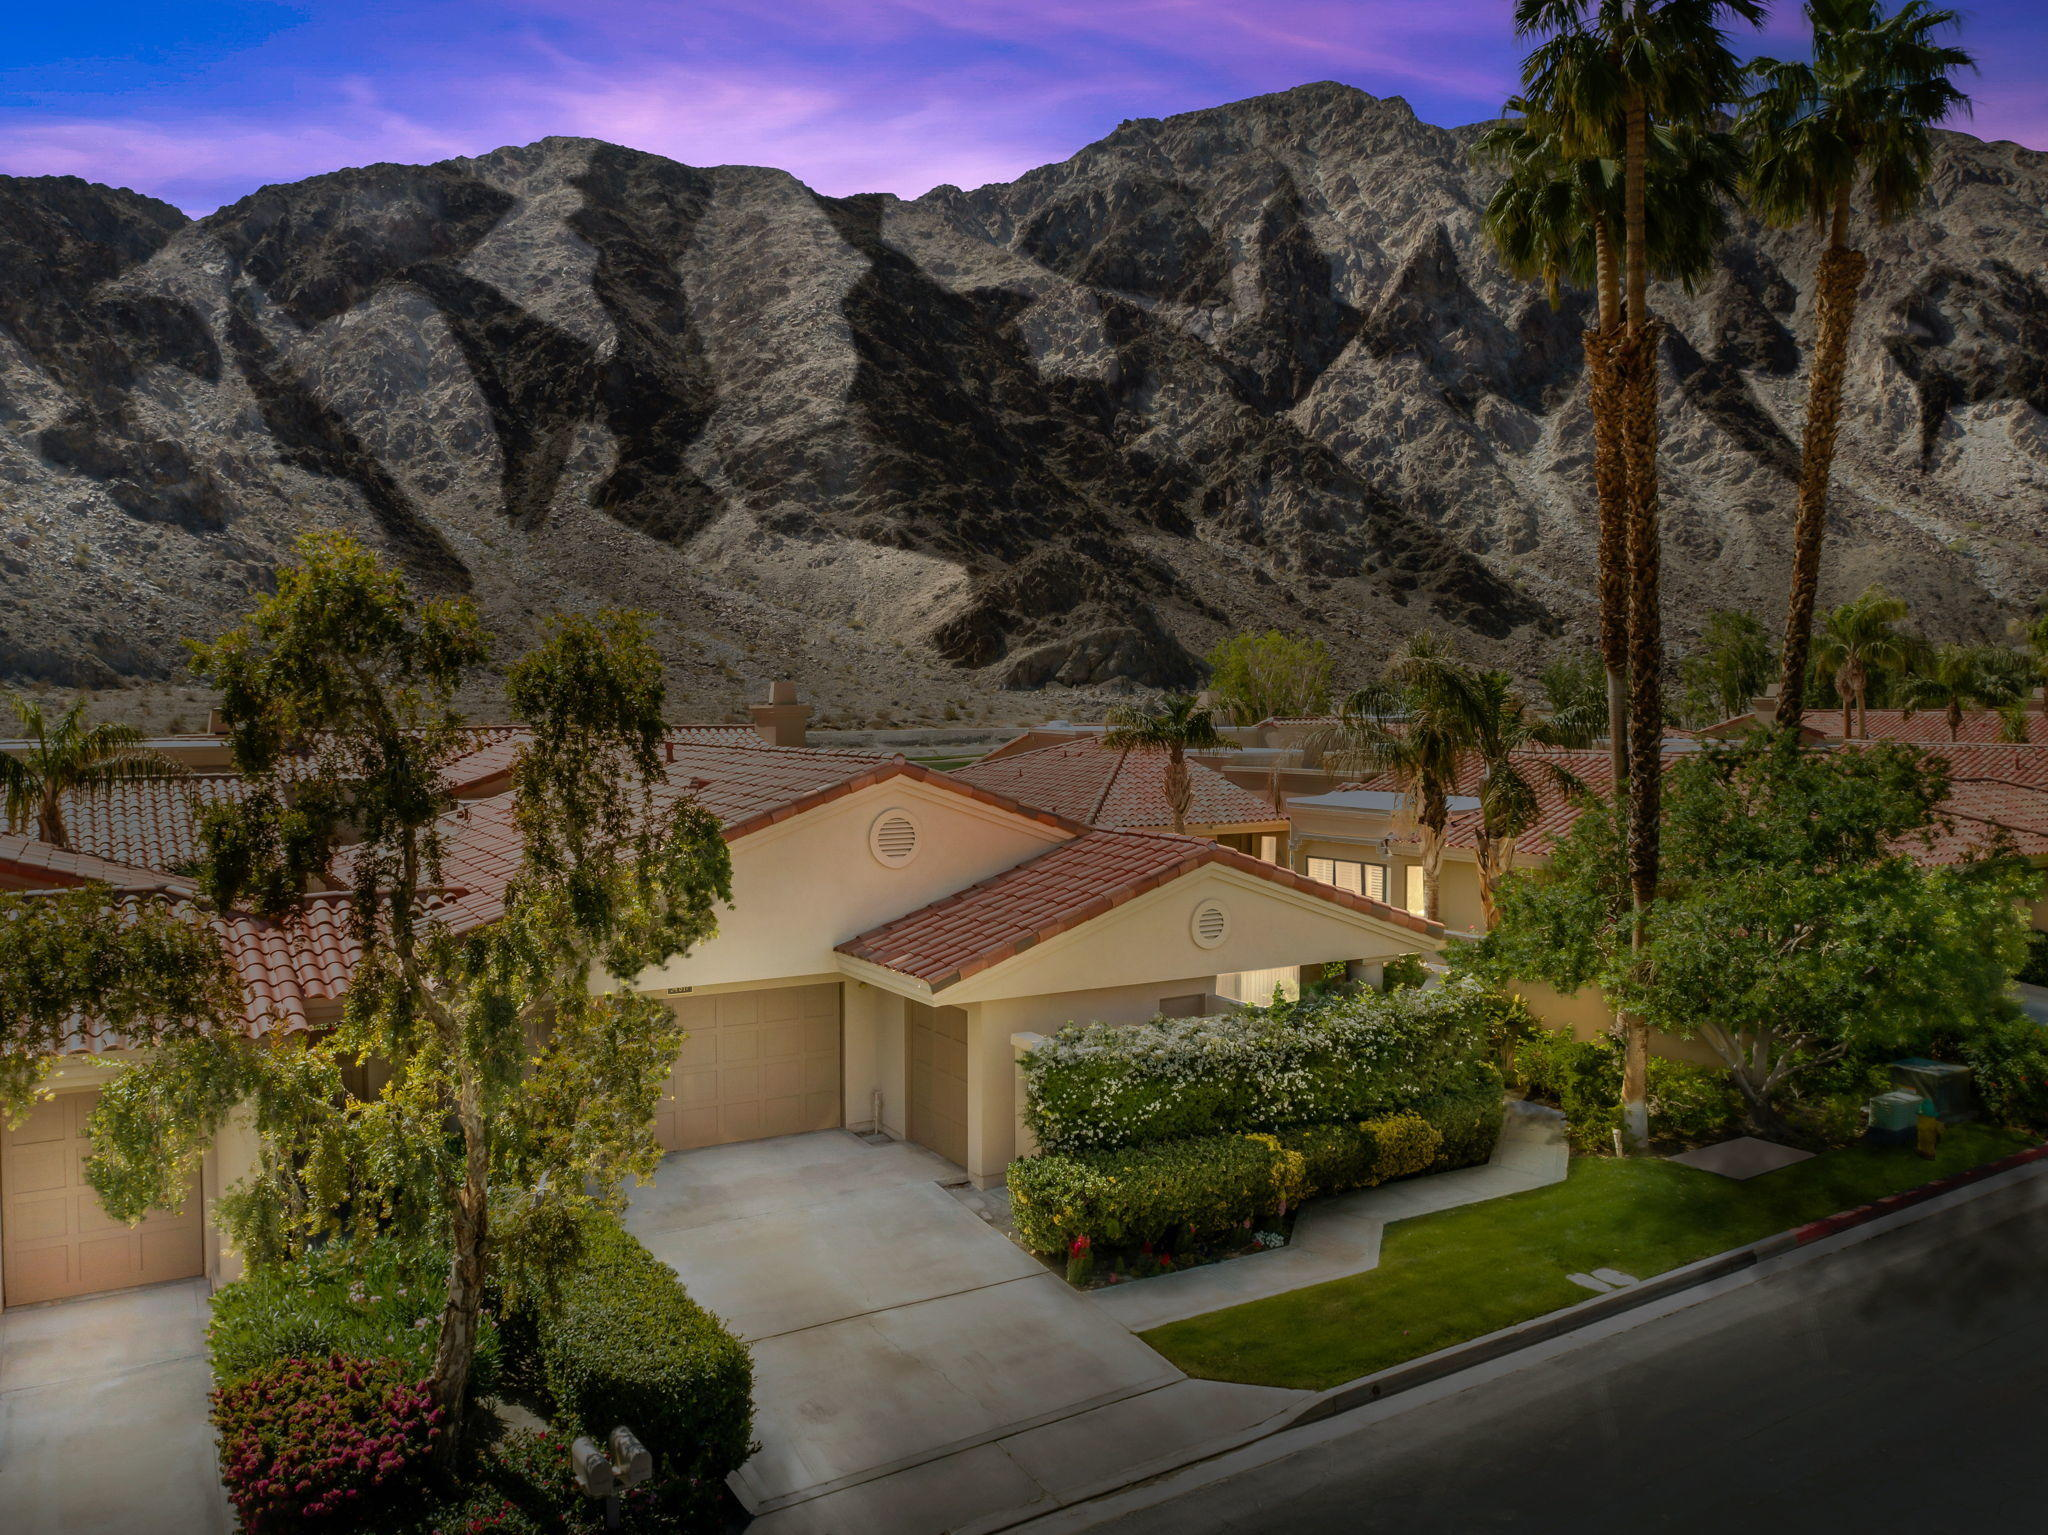 Located on the 14th hole of the Palmer course at PGA WEST with unobstructed western mountain and golf views. This location is a 10+. Watch the golfers and the bighorn sheep from your back patio and at nighttime the mountains light up.  Lots of opportunity from this legends 40 3 bed/3.5 bath condo 3031 sq ft.  Great entertaining home.  Expansive living space with kitchen open to family room and views.  Large living room/game room including sunken wet bar with vaulted ceilings and dining room opens to the views and sunshine.  All bedrooms are large with bathrooms in suite.  Attached two car garage with direct access to the home make this a popular floor plan. Extra golf cart garage for cart or storage.   Community pool and spa located very close by.  These locations do not come on the market very often.  HOA includes exterior landscape maintenance, exterior property maintenance (paint, roof, insurance), Cable tv/internet, trash, community pools/spas and community patrol/security.  Come enjoy the desert resort lifestyle!